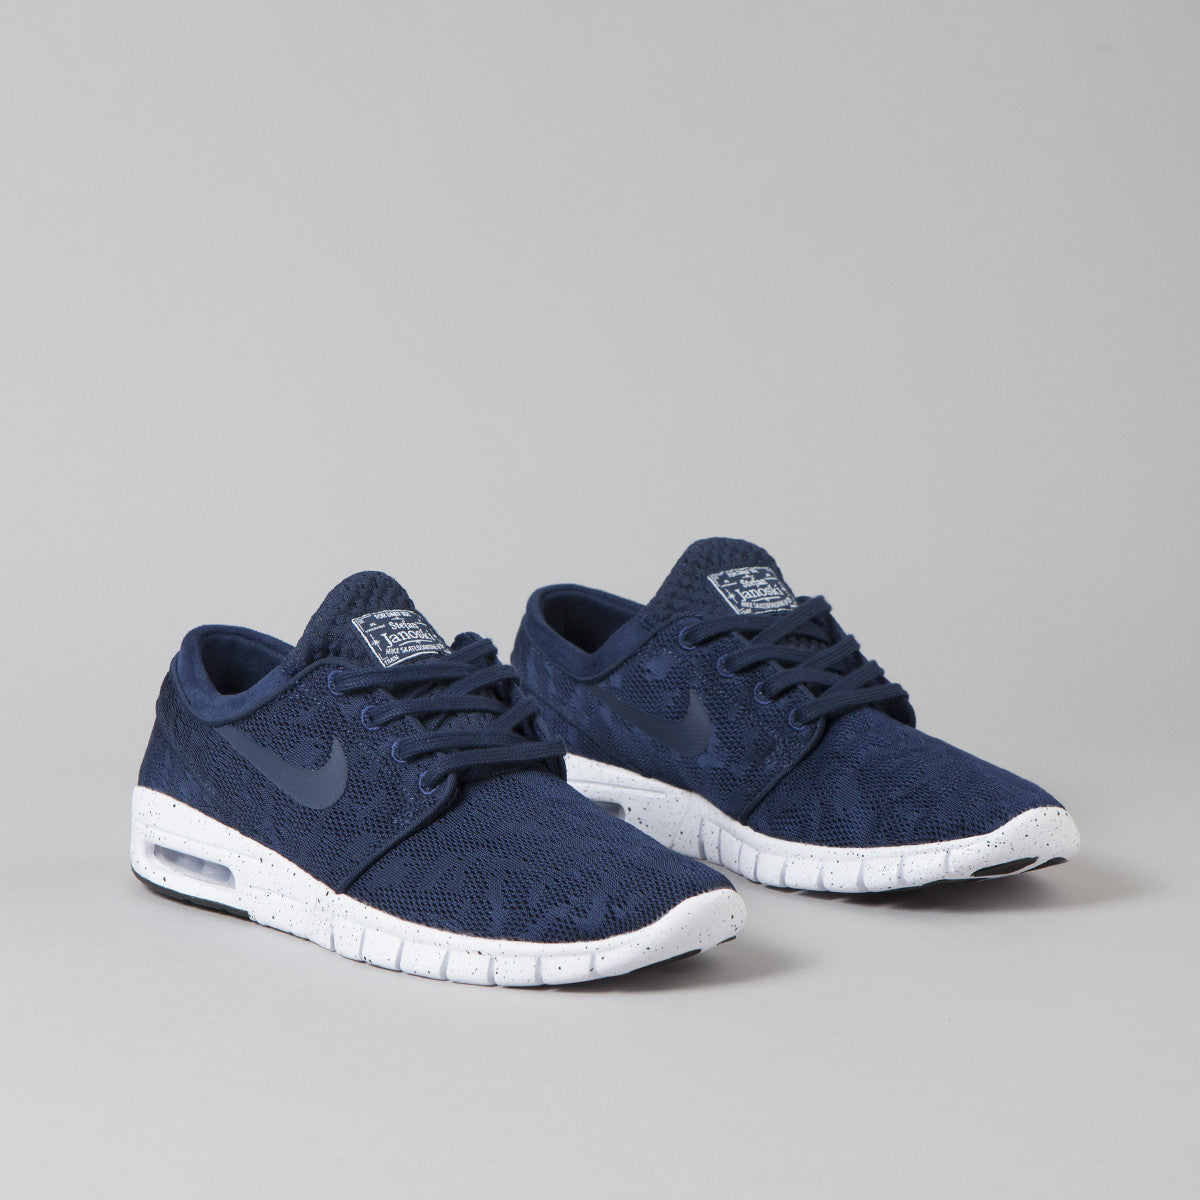 nike sb stefan janoski max shoes - midnight navy/white